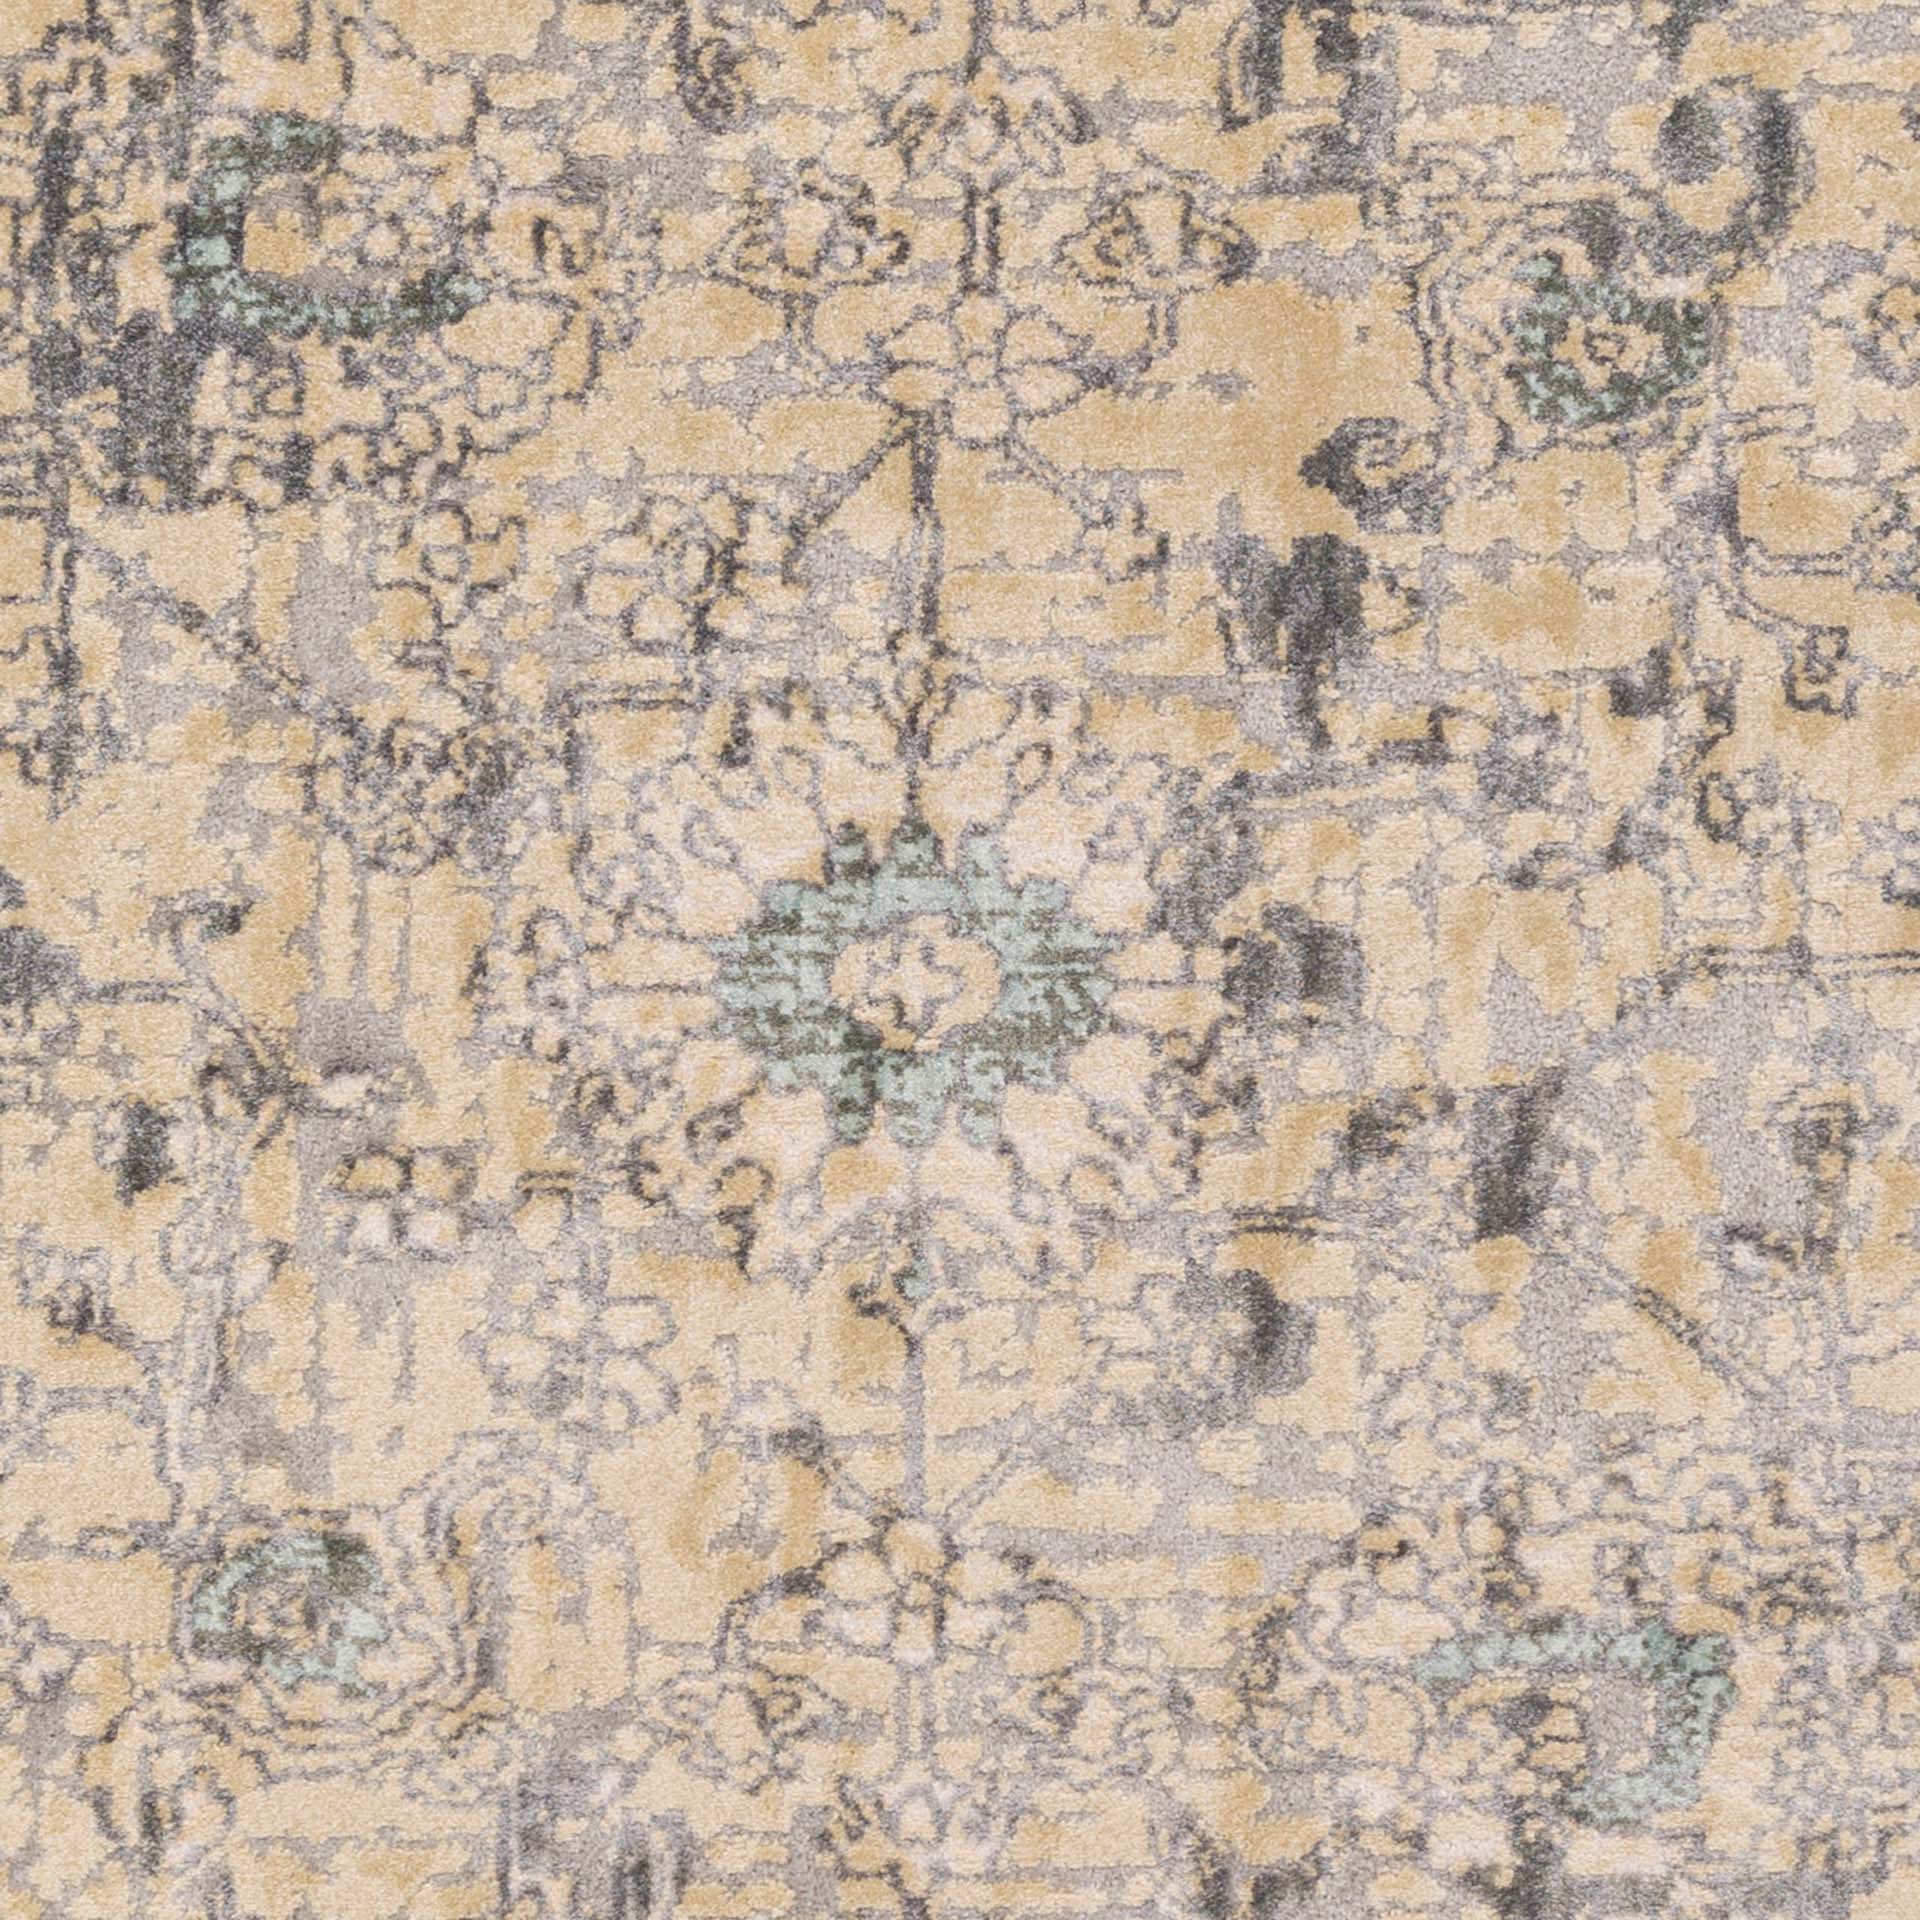 Neutral machine made Egyptian area rug in beige with hints of gray and green - Close up